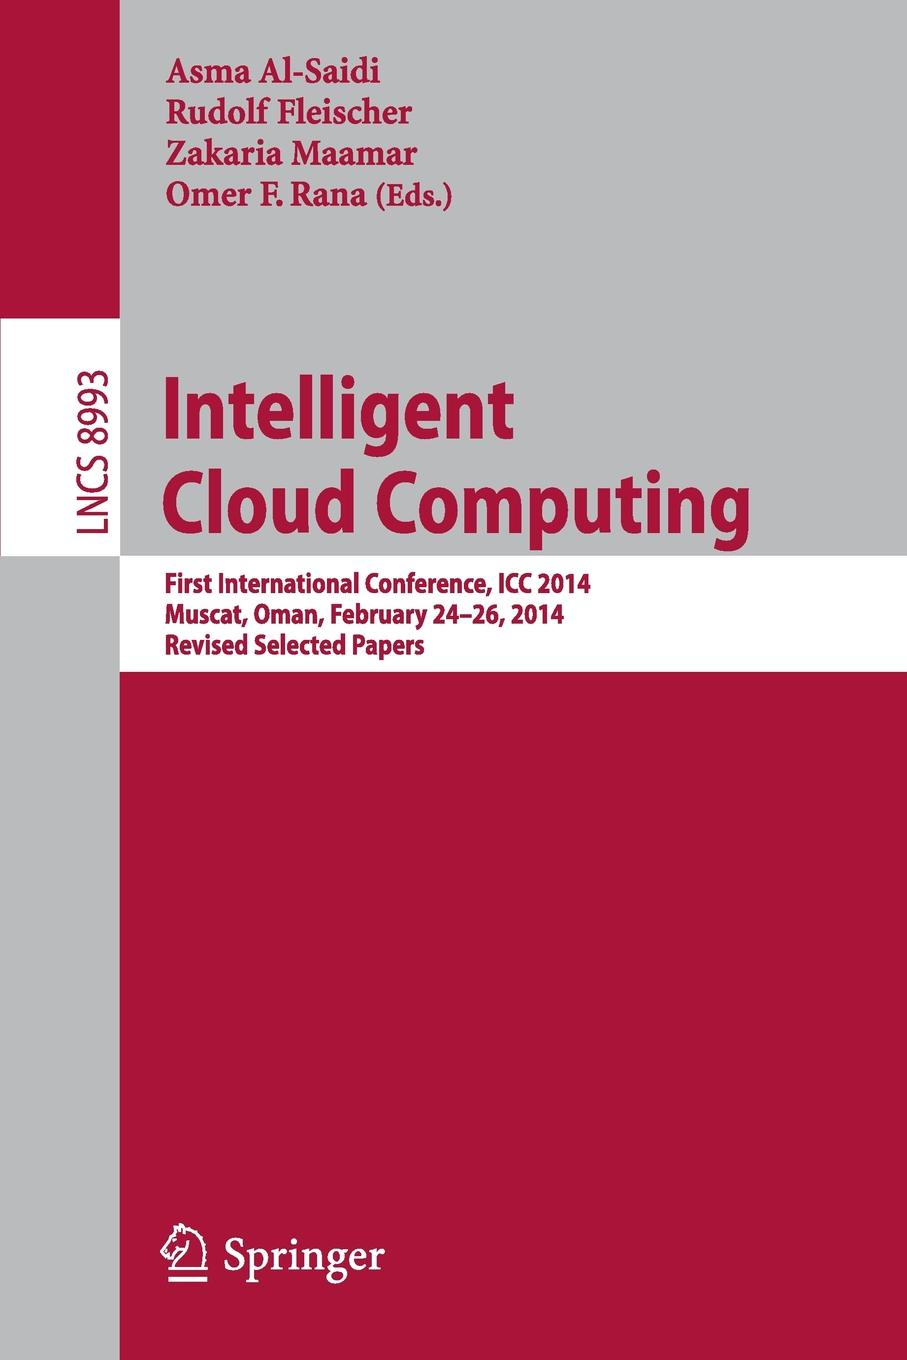 Intelligent Cloud Computing. First International Conference, ICC 2014, Muscat, Oman, February 24-26, 2014, Revised Selected Papers.